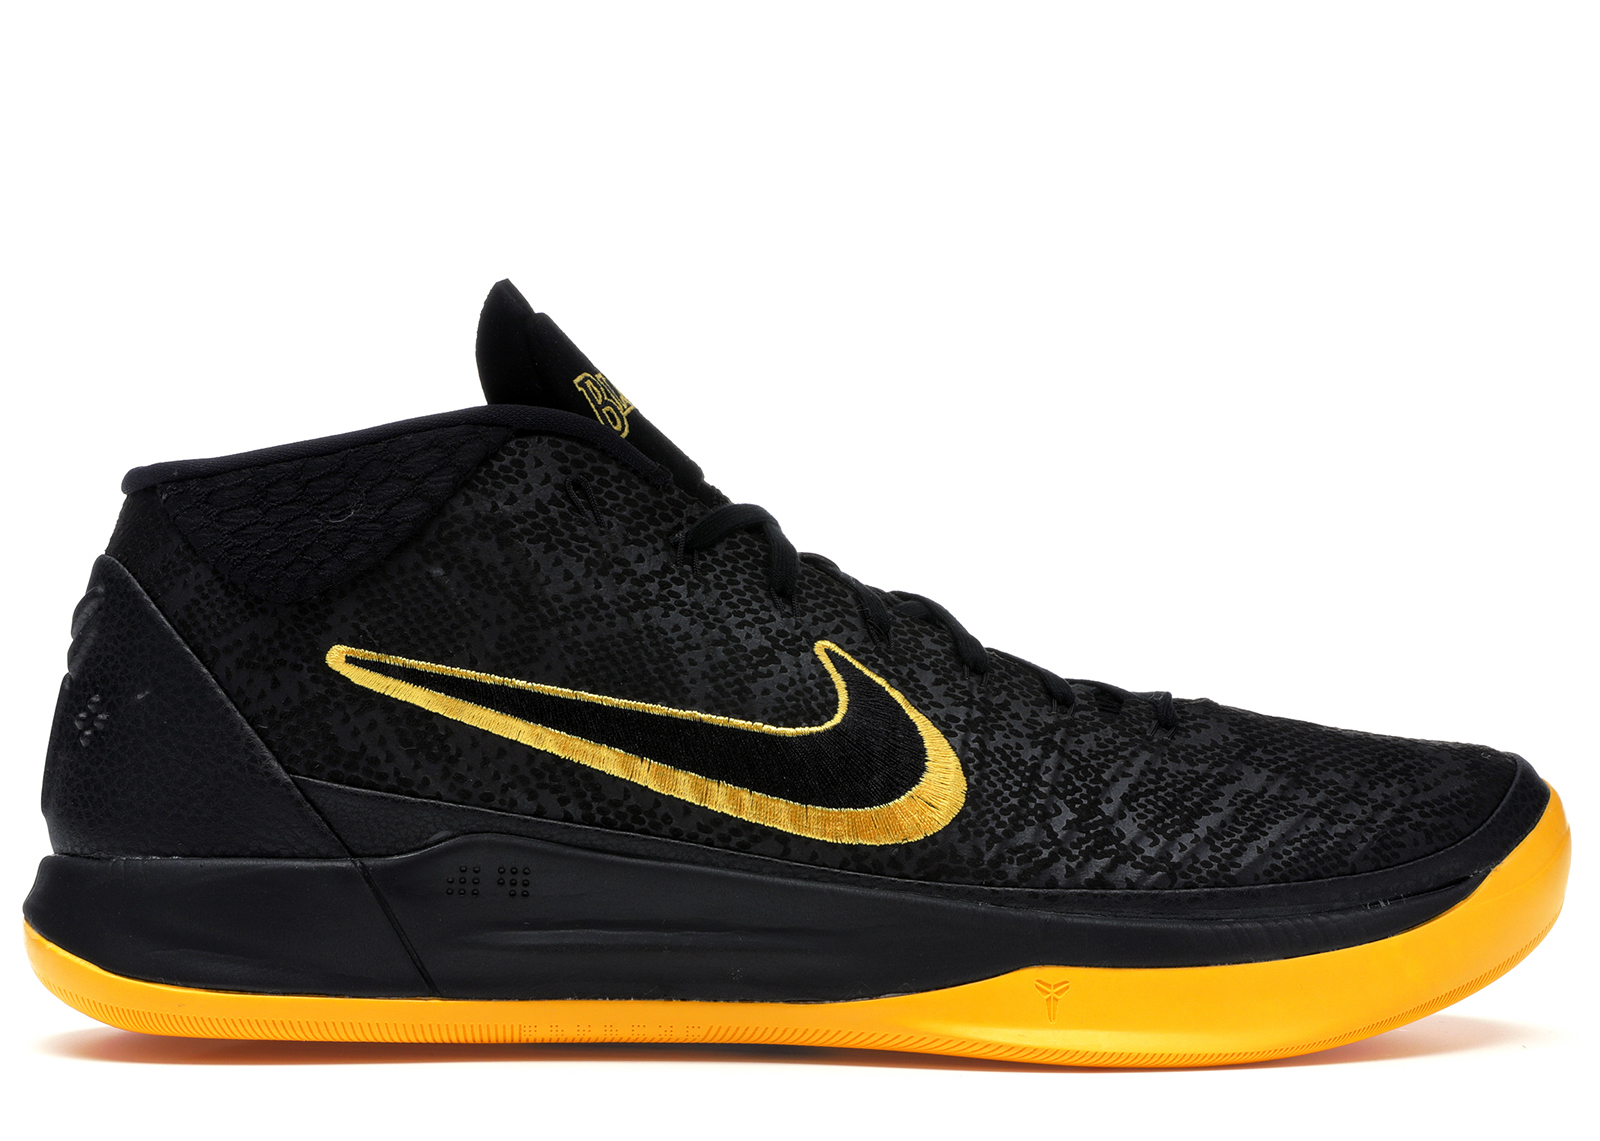 kobe ad yellow and black off 56% - www